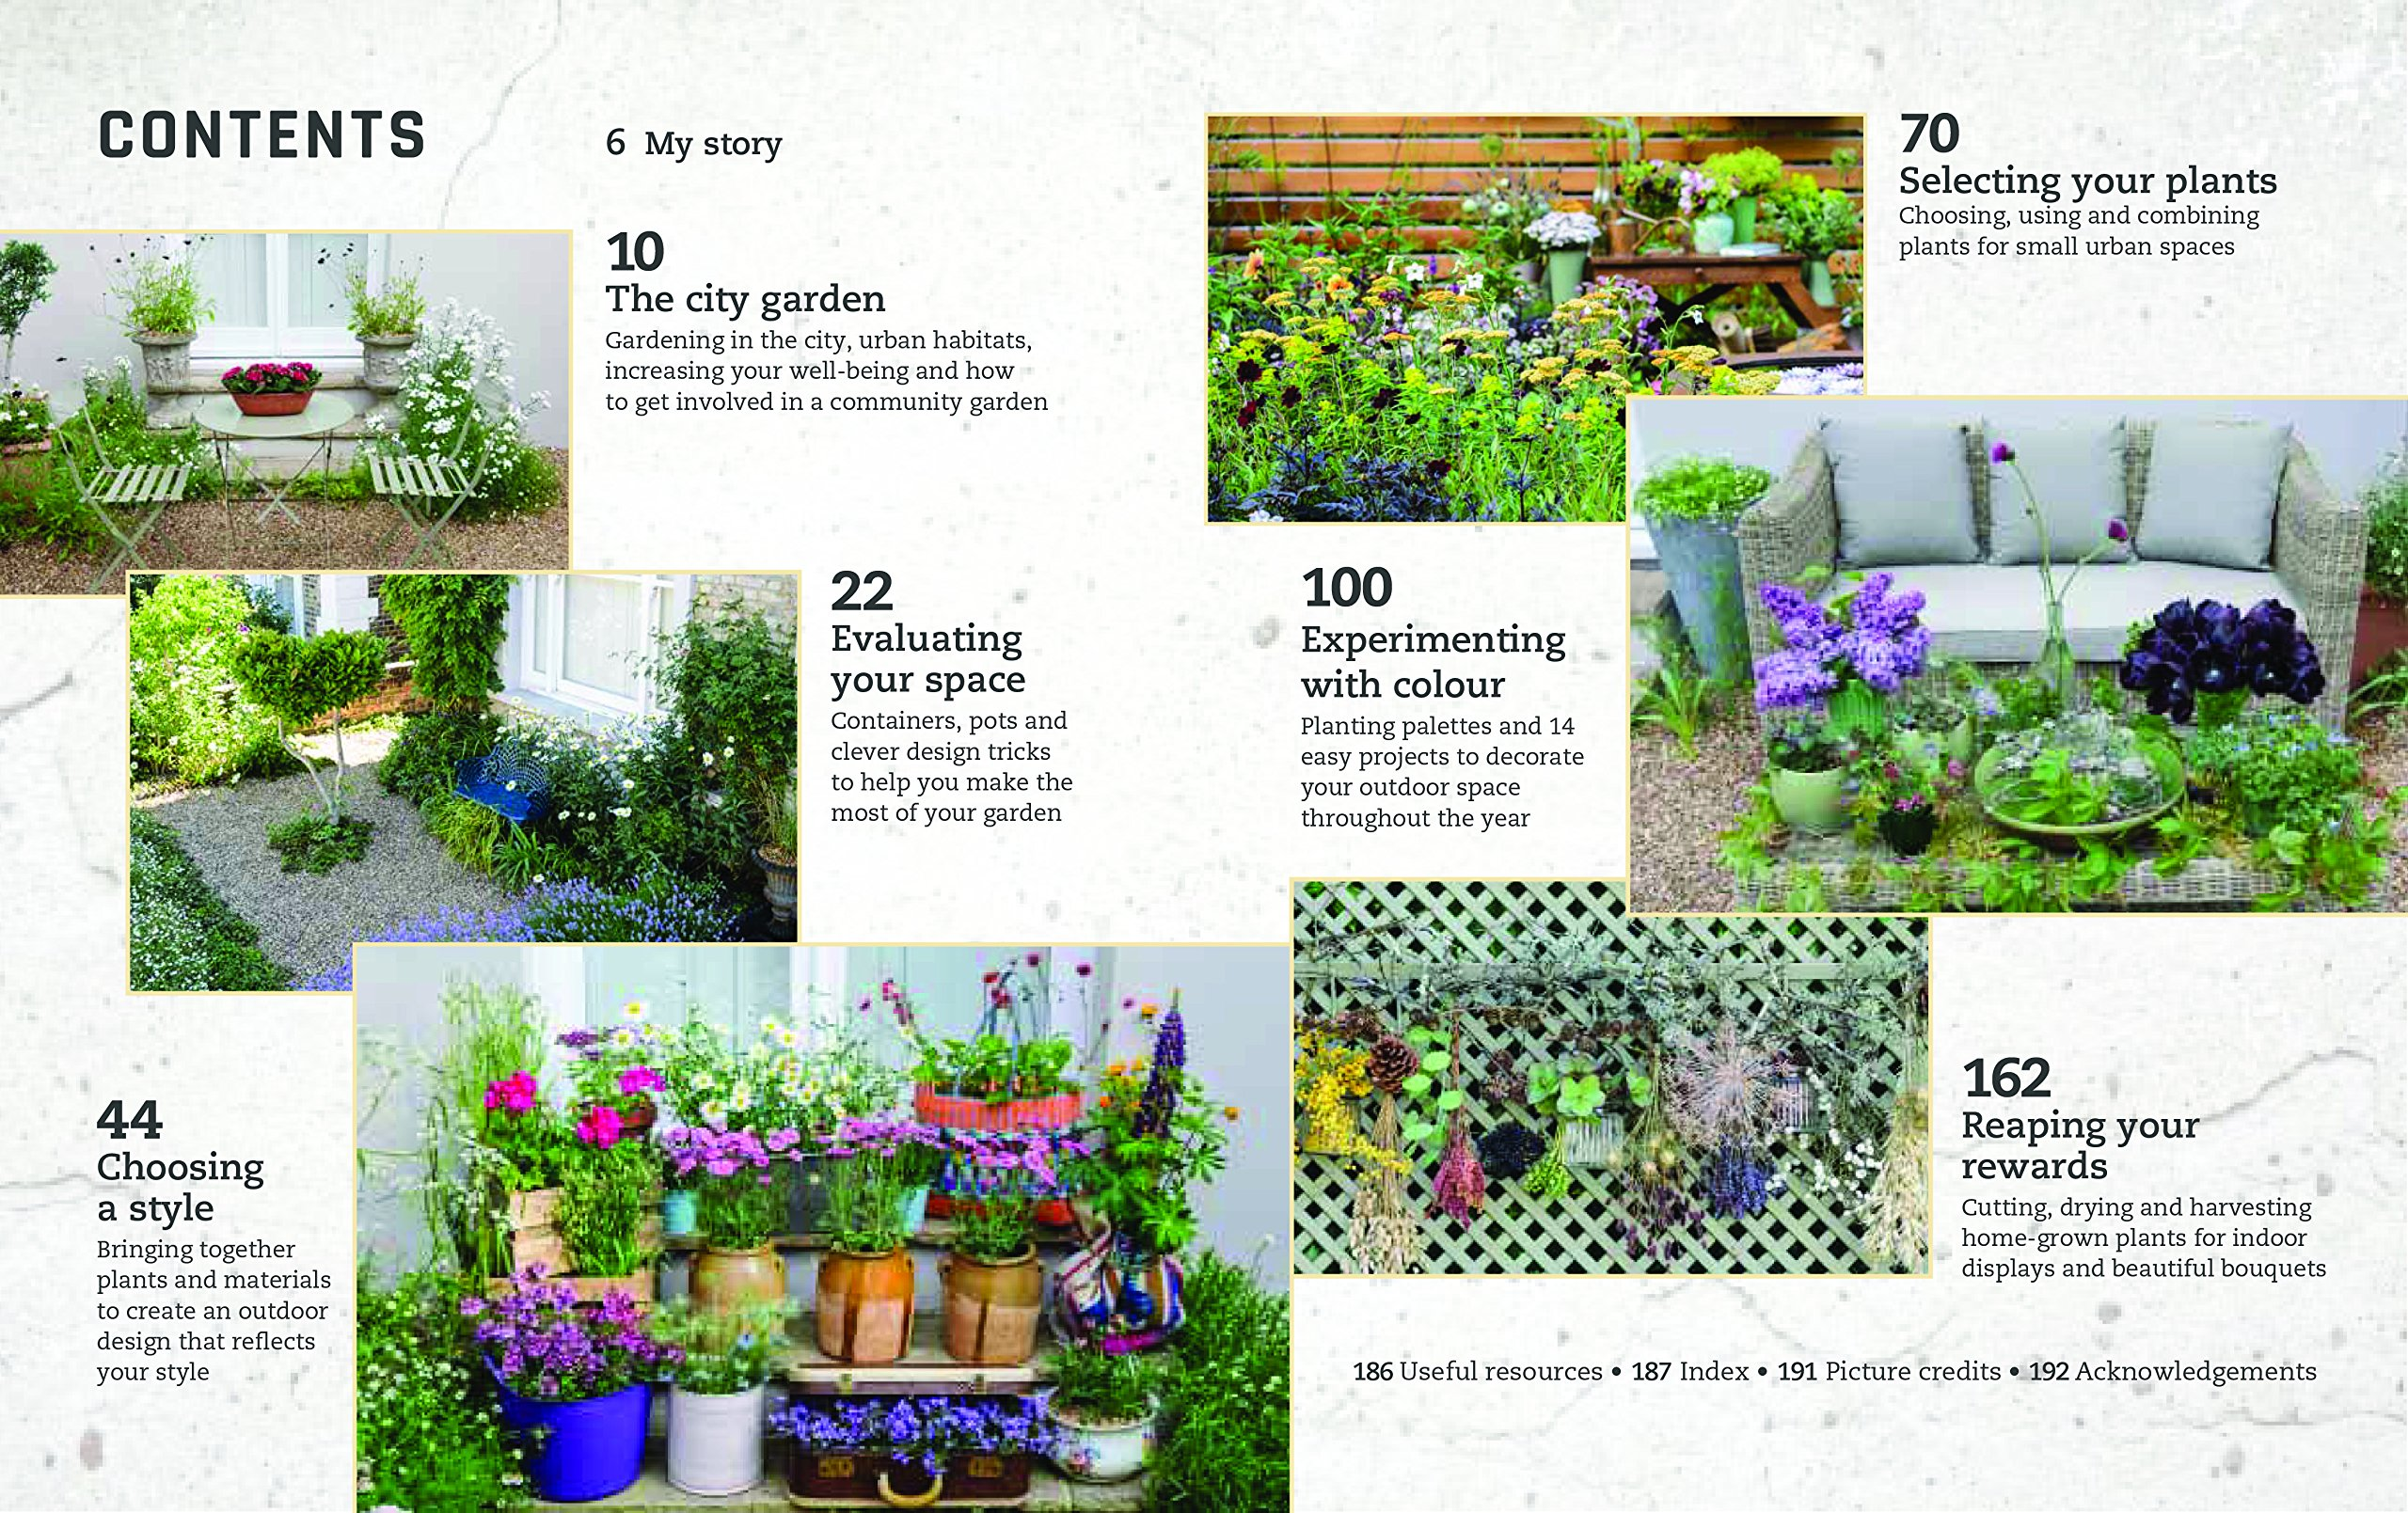 Top 30 stunning low budget diy garden pots and containers 187 home - Urban Flowers Creating Abundance In A Small City Garden Amazon Co Uk Carolyn Dunster 9780711238626 Books